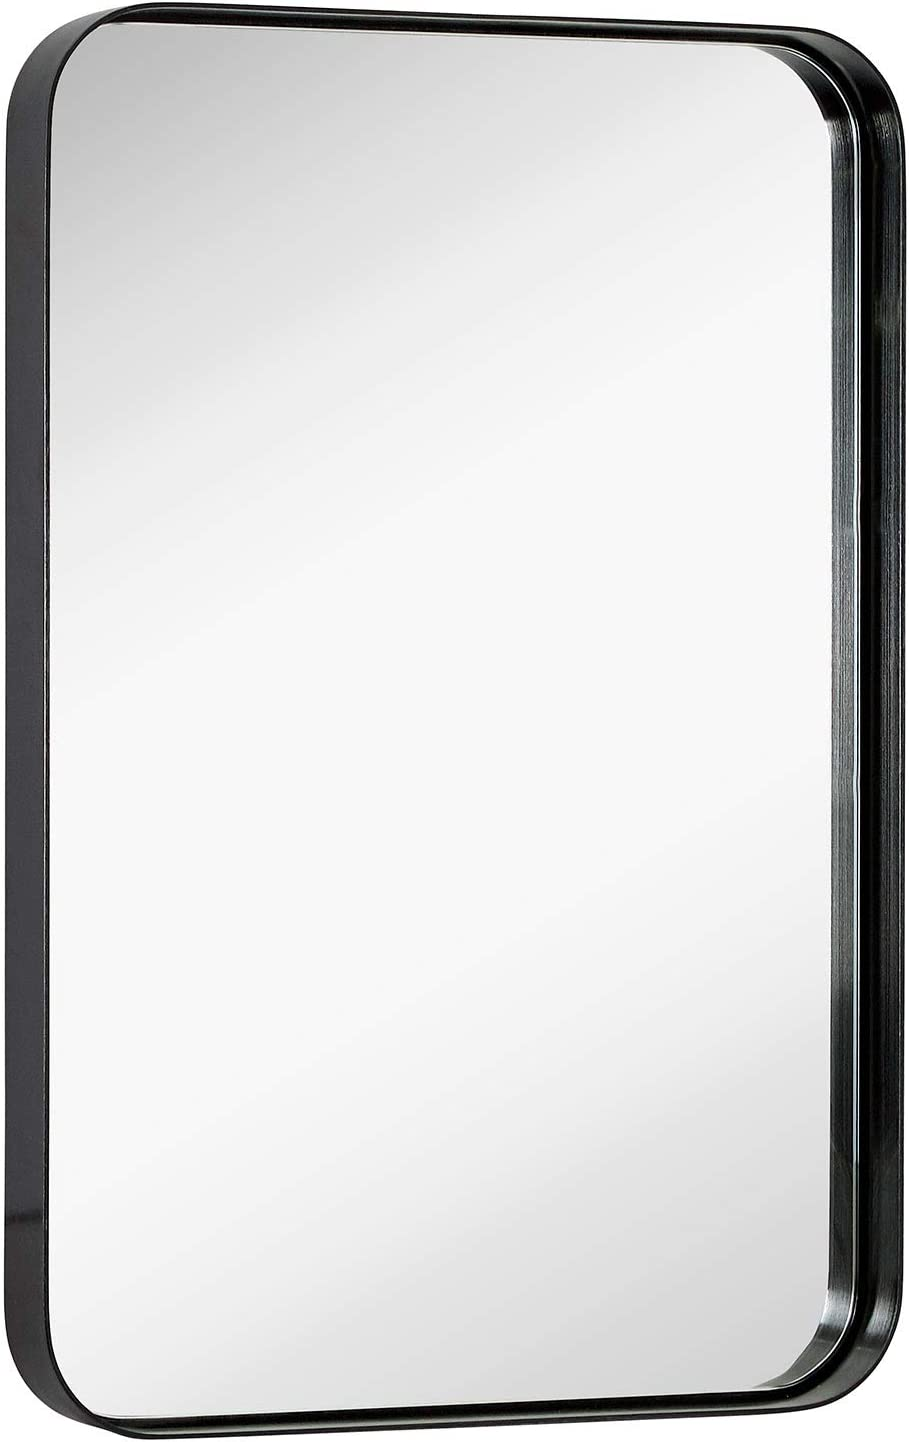 "Hamilton Hills Contemporary Brushed Metal Wall Mirror | Glass Panel Black Framed Rounded Corner Deep Set Design | Mirrored Rectangle Hangs Horizontal or Vertical (16"" x 24"")"